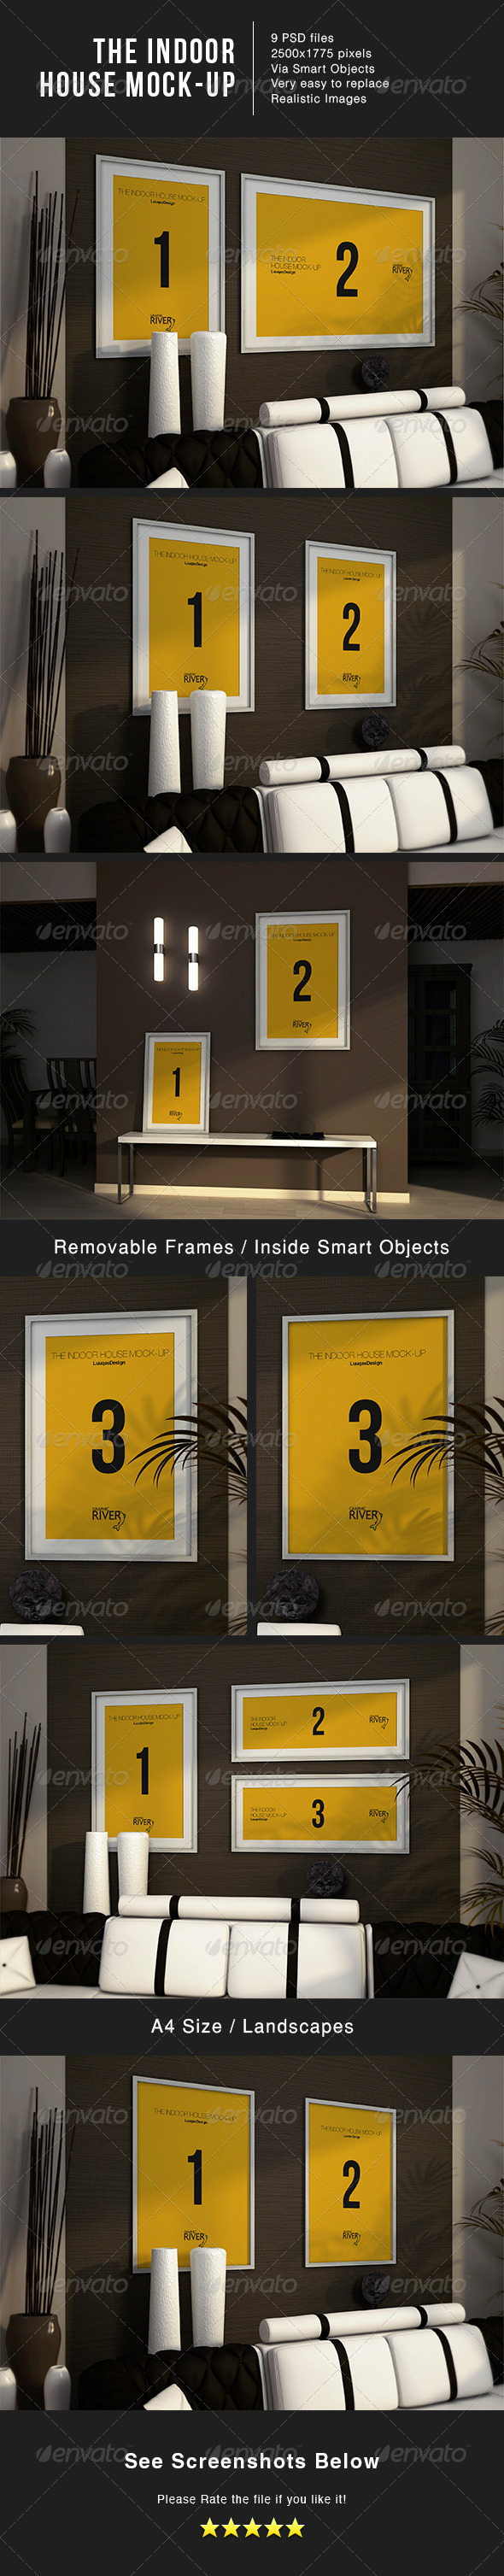 The Indoor House Mock-Up - Posters Print